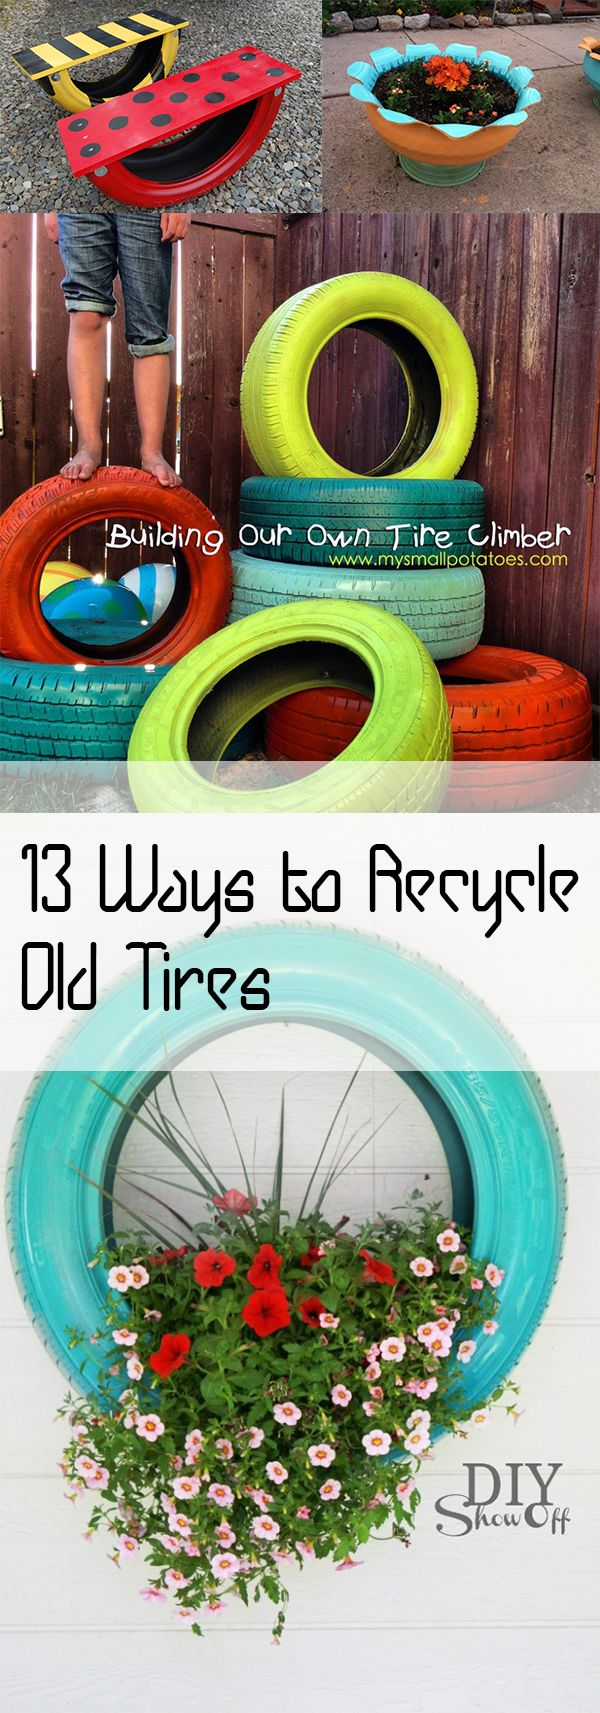 100 ways to recycle - 13 Ways To Recycle Old Tires